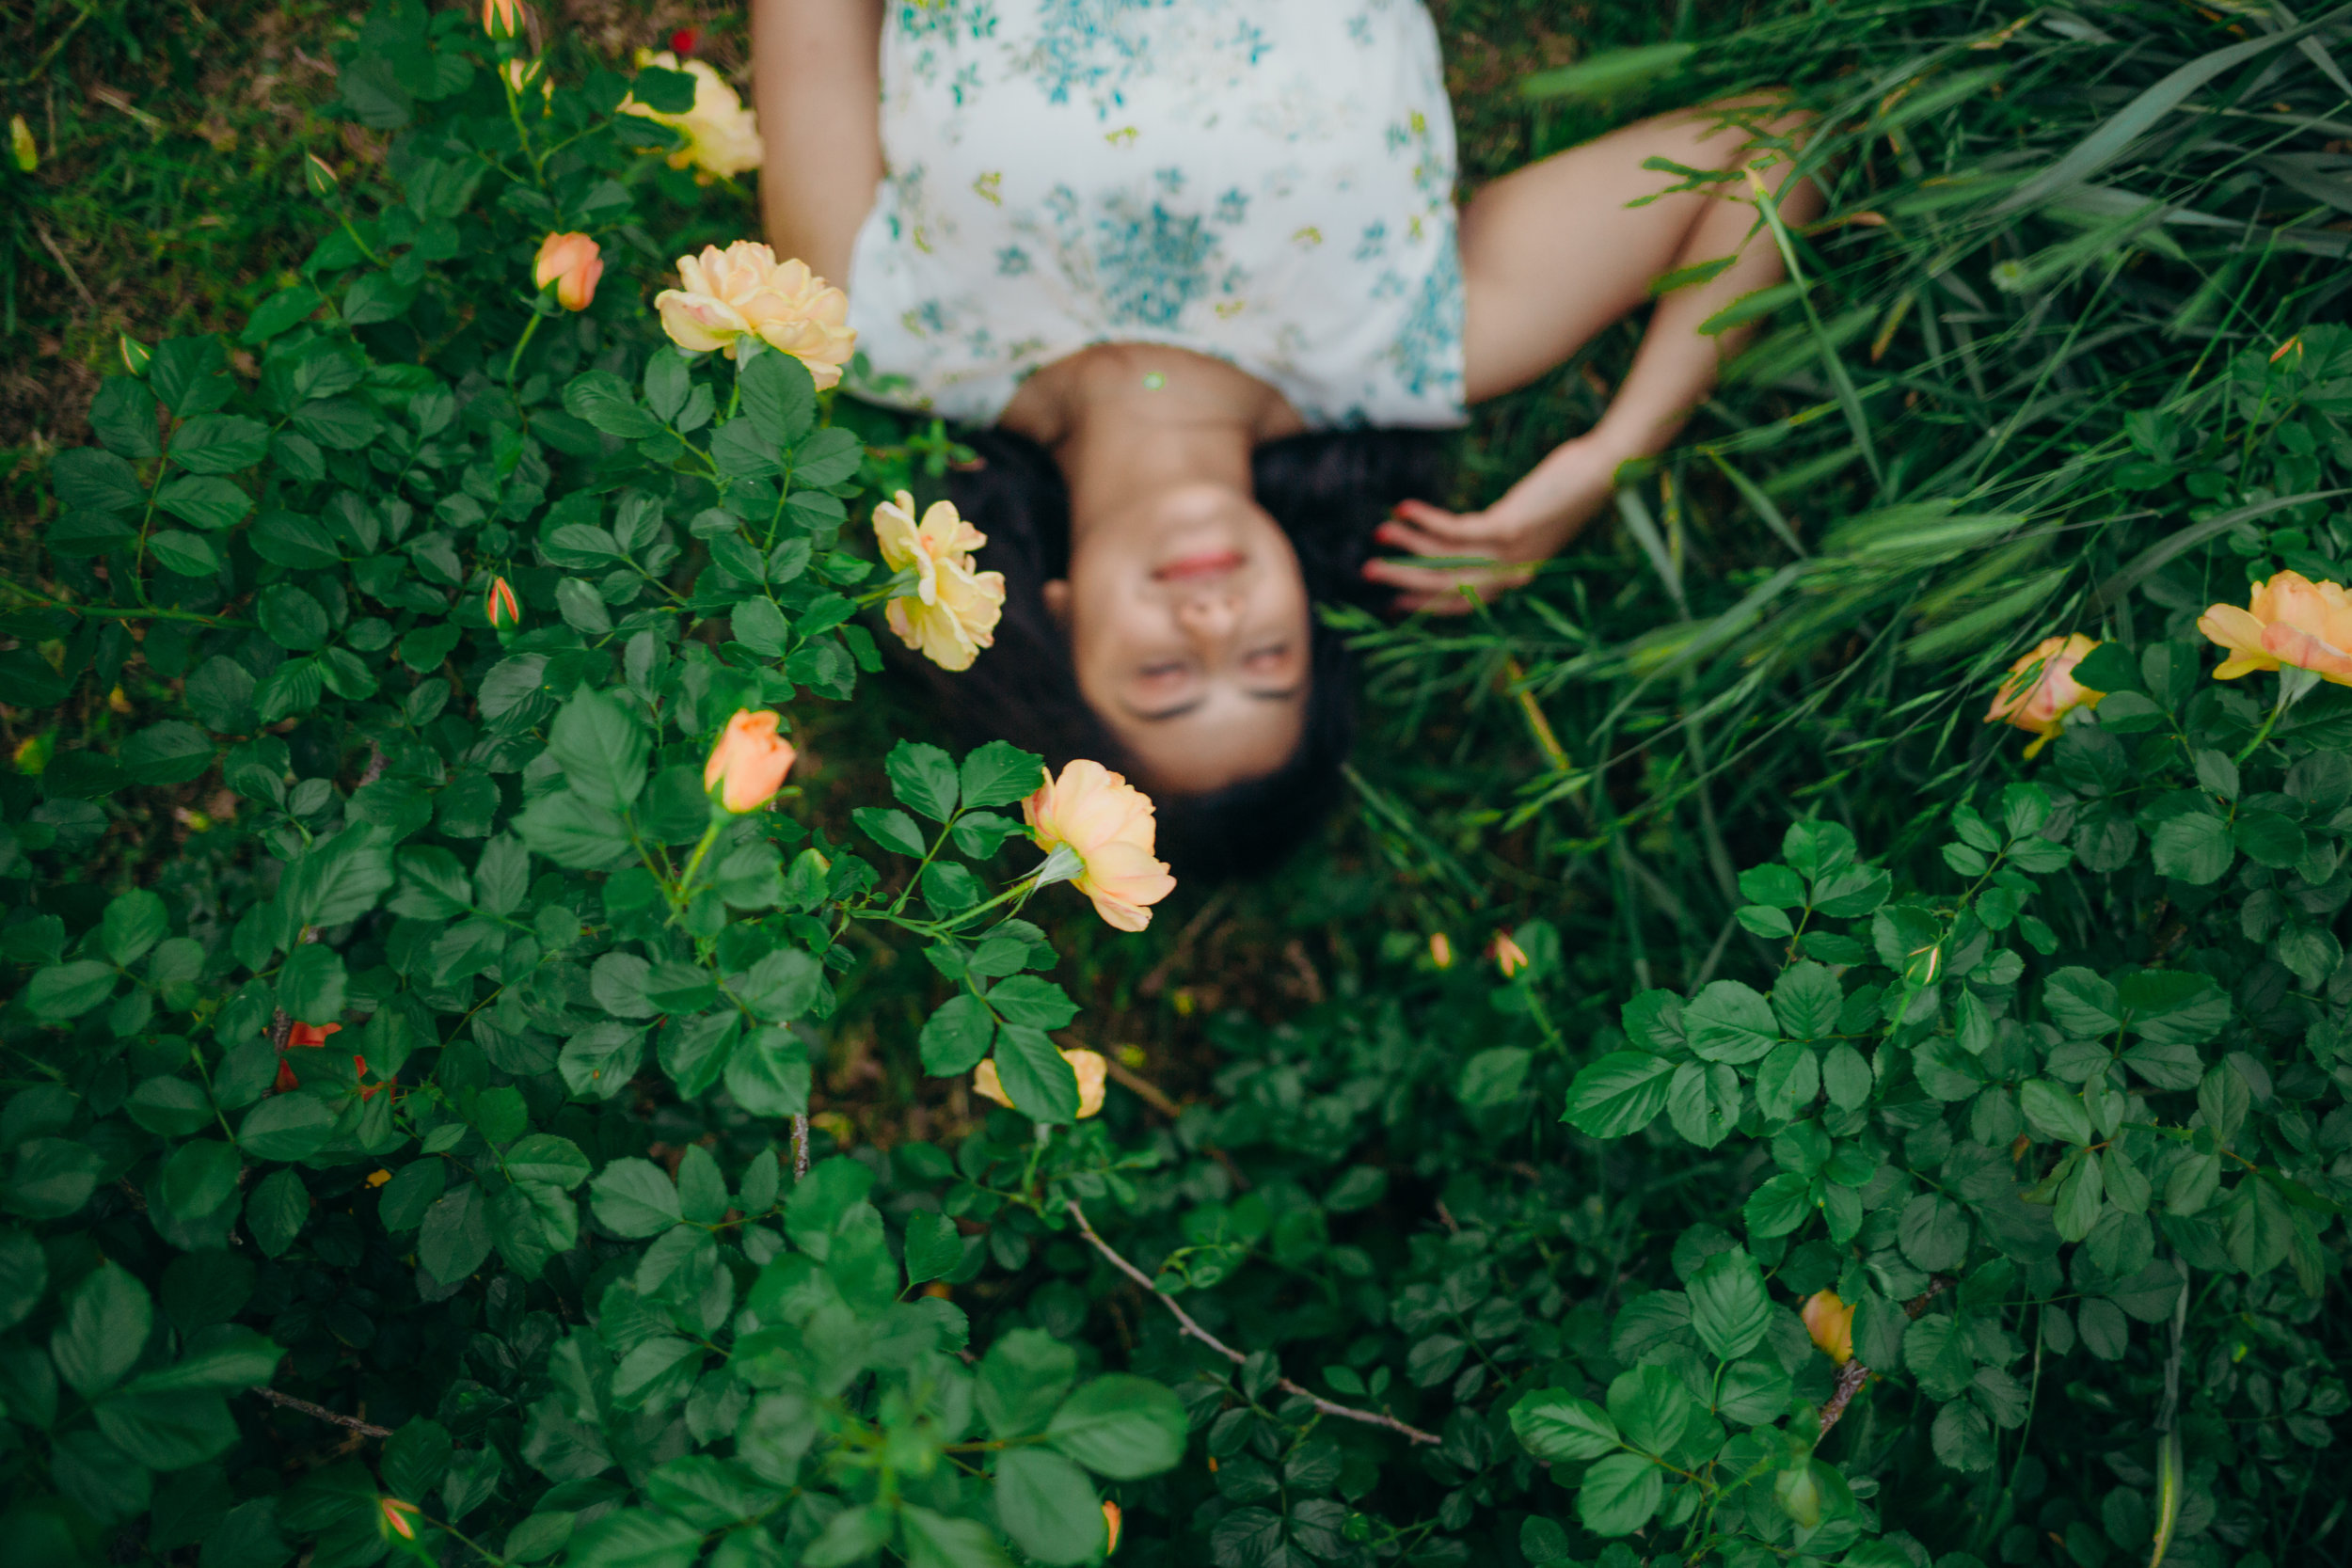 greenery and whimsy portraits